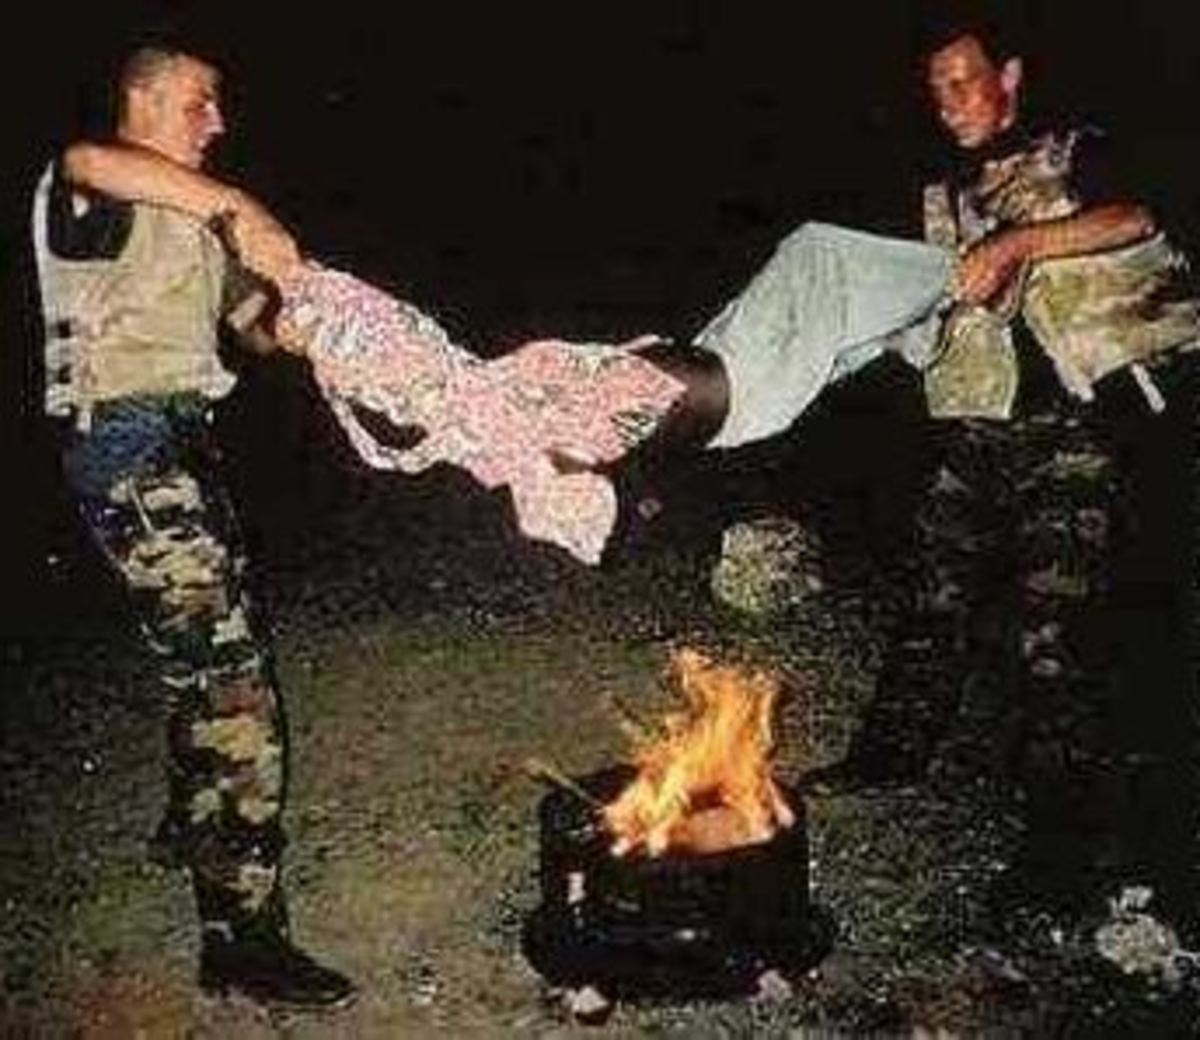 Two Belgian soldiers torture a Somali youth over an open fire